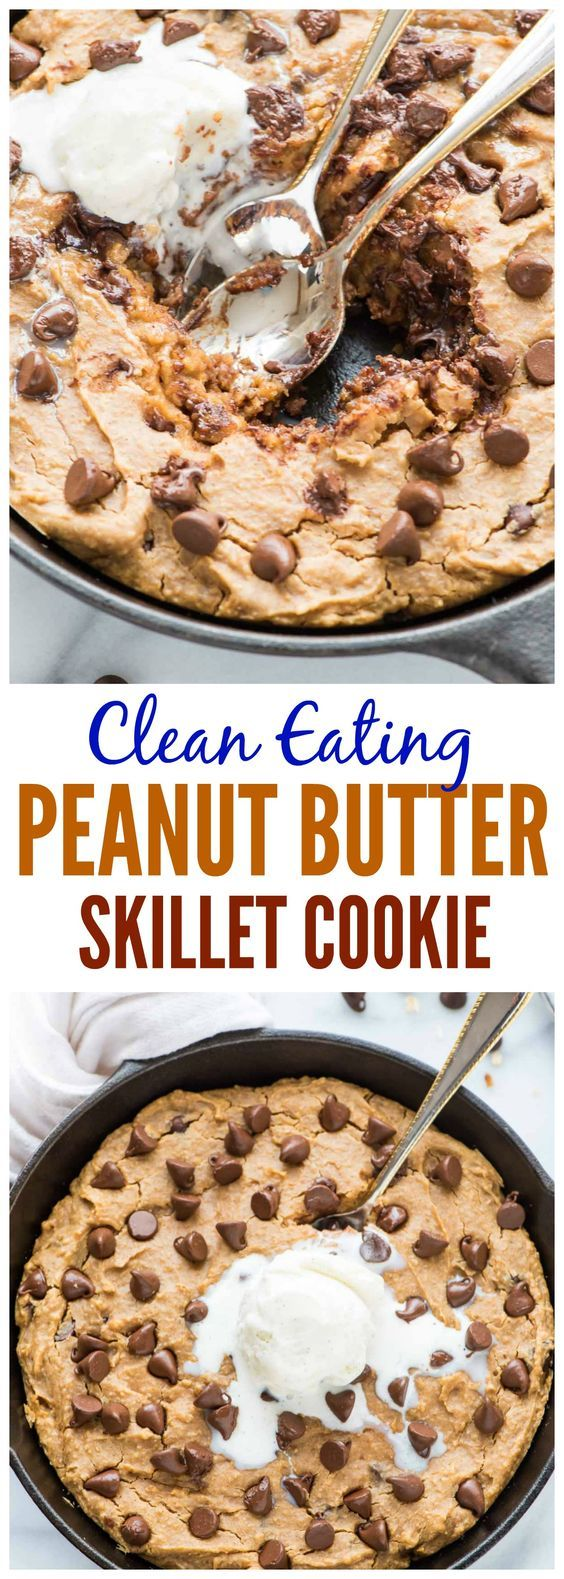 Clean Eating Peanut Butter Skillet Cookie. NO butter, sugar, or oil, and it tastes incredible. This is the BEST healthy peanut butter cookie recipe. Dairy free and gluten free! Recipe at www.wellplated.com @wellplated